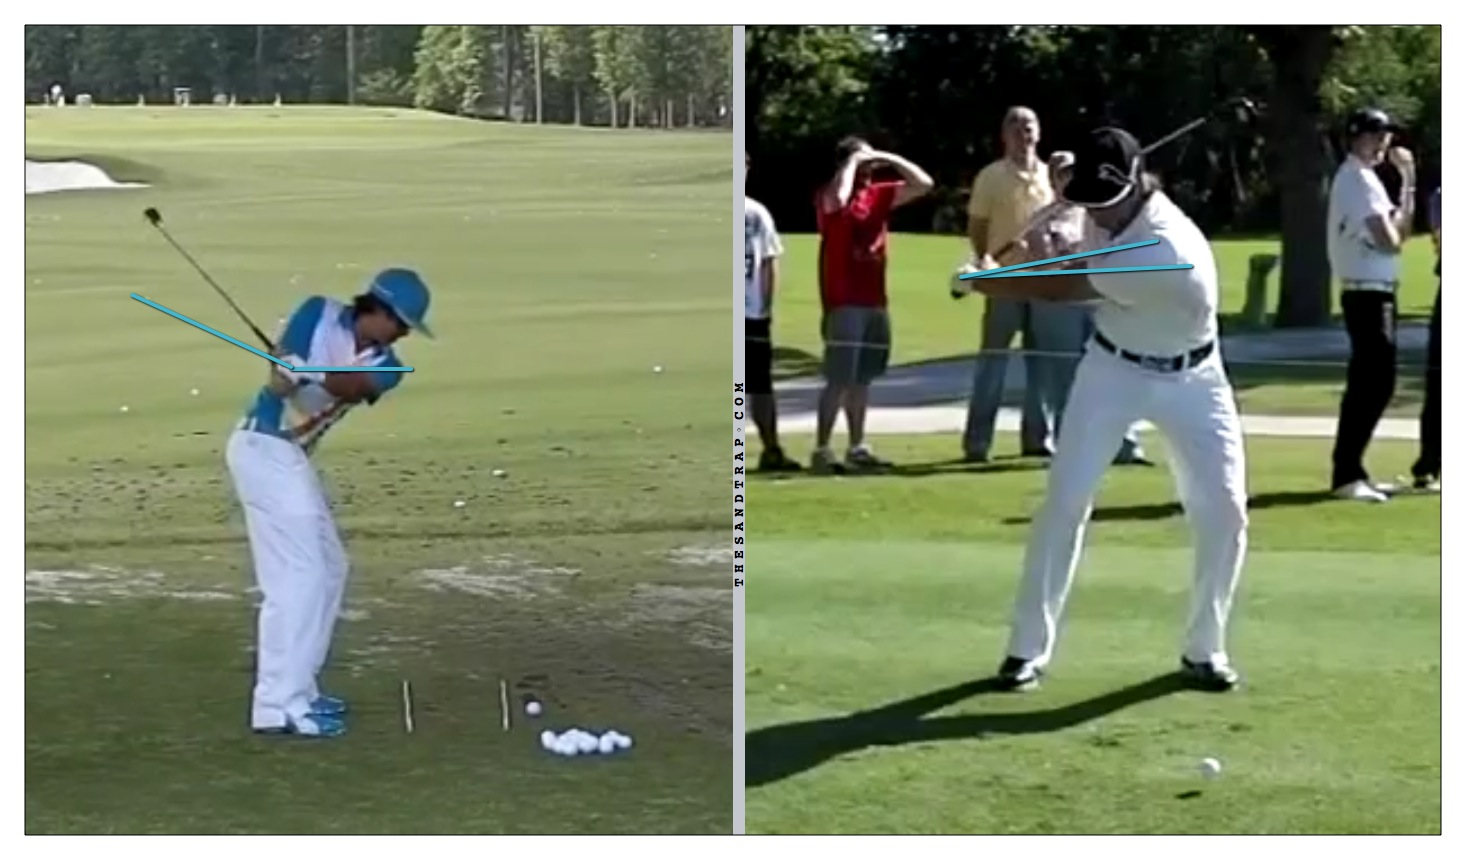 The Ps (Positions) or As (Alignments) in the Golf Swing